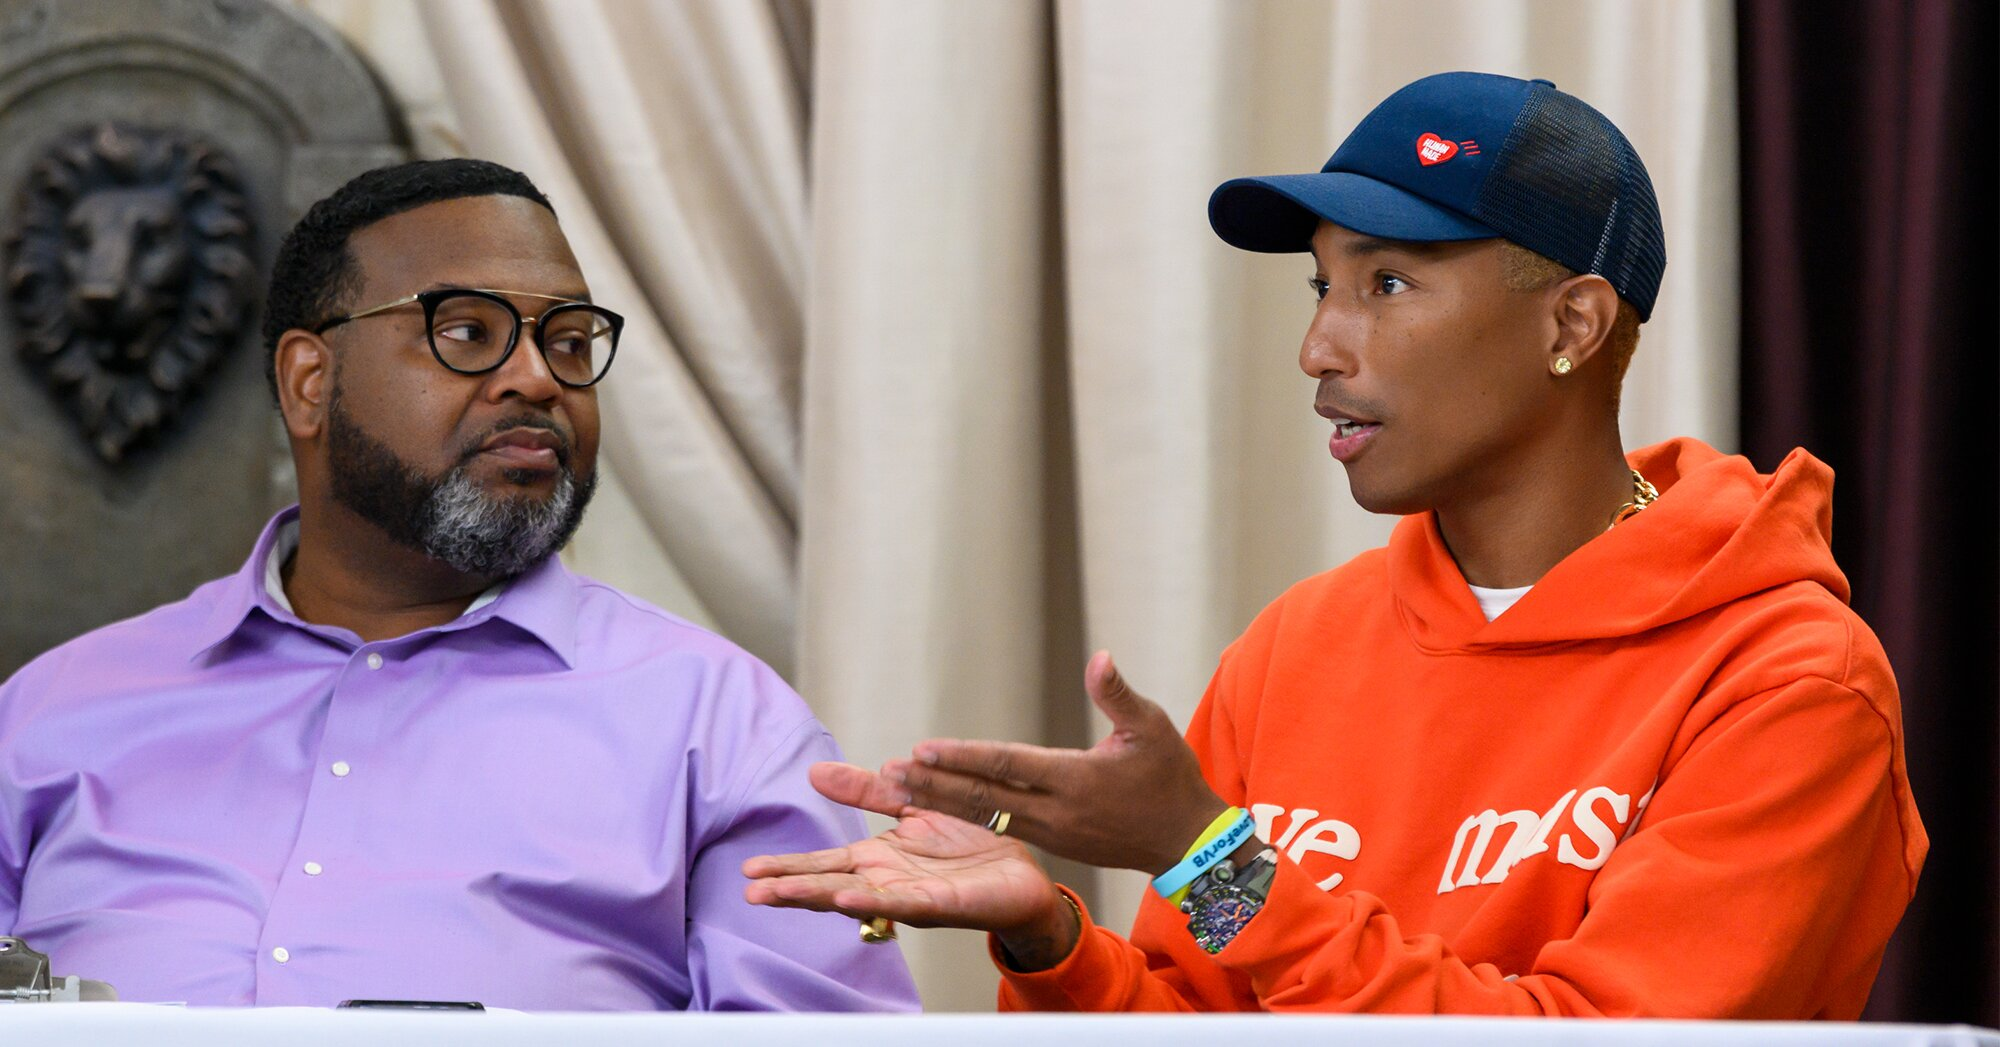 Pharrell will return home to build a gospel choir in Netflix's 'Voices of Fire'